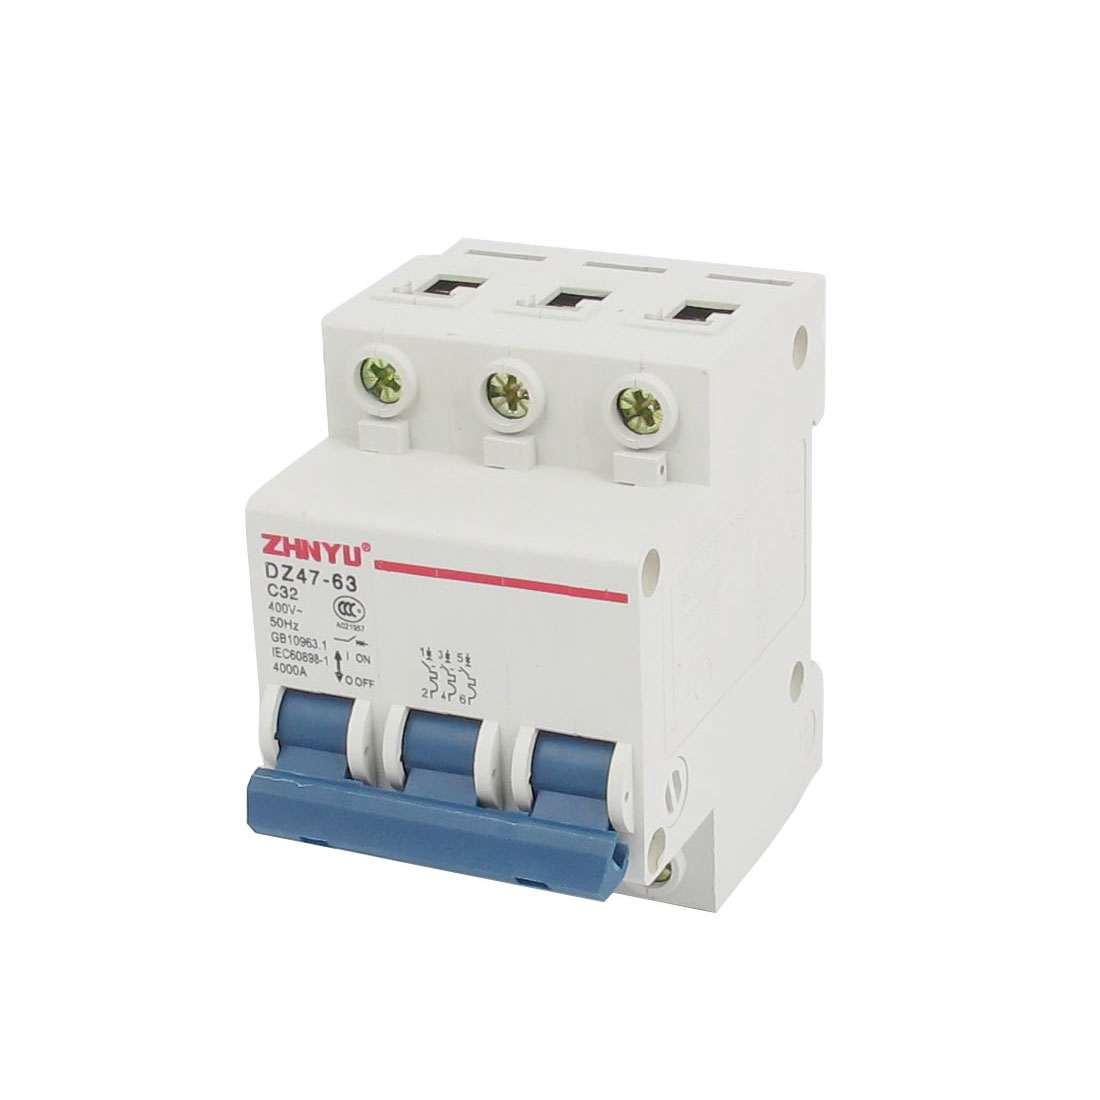 AC 400V 50Hz 32A 4000A Breaking Capacity 3P ON/OFF Switch Overload Protection Mini Circuit Breaker